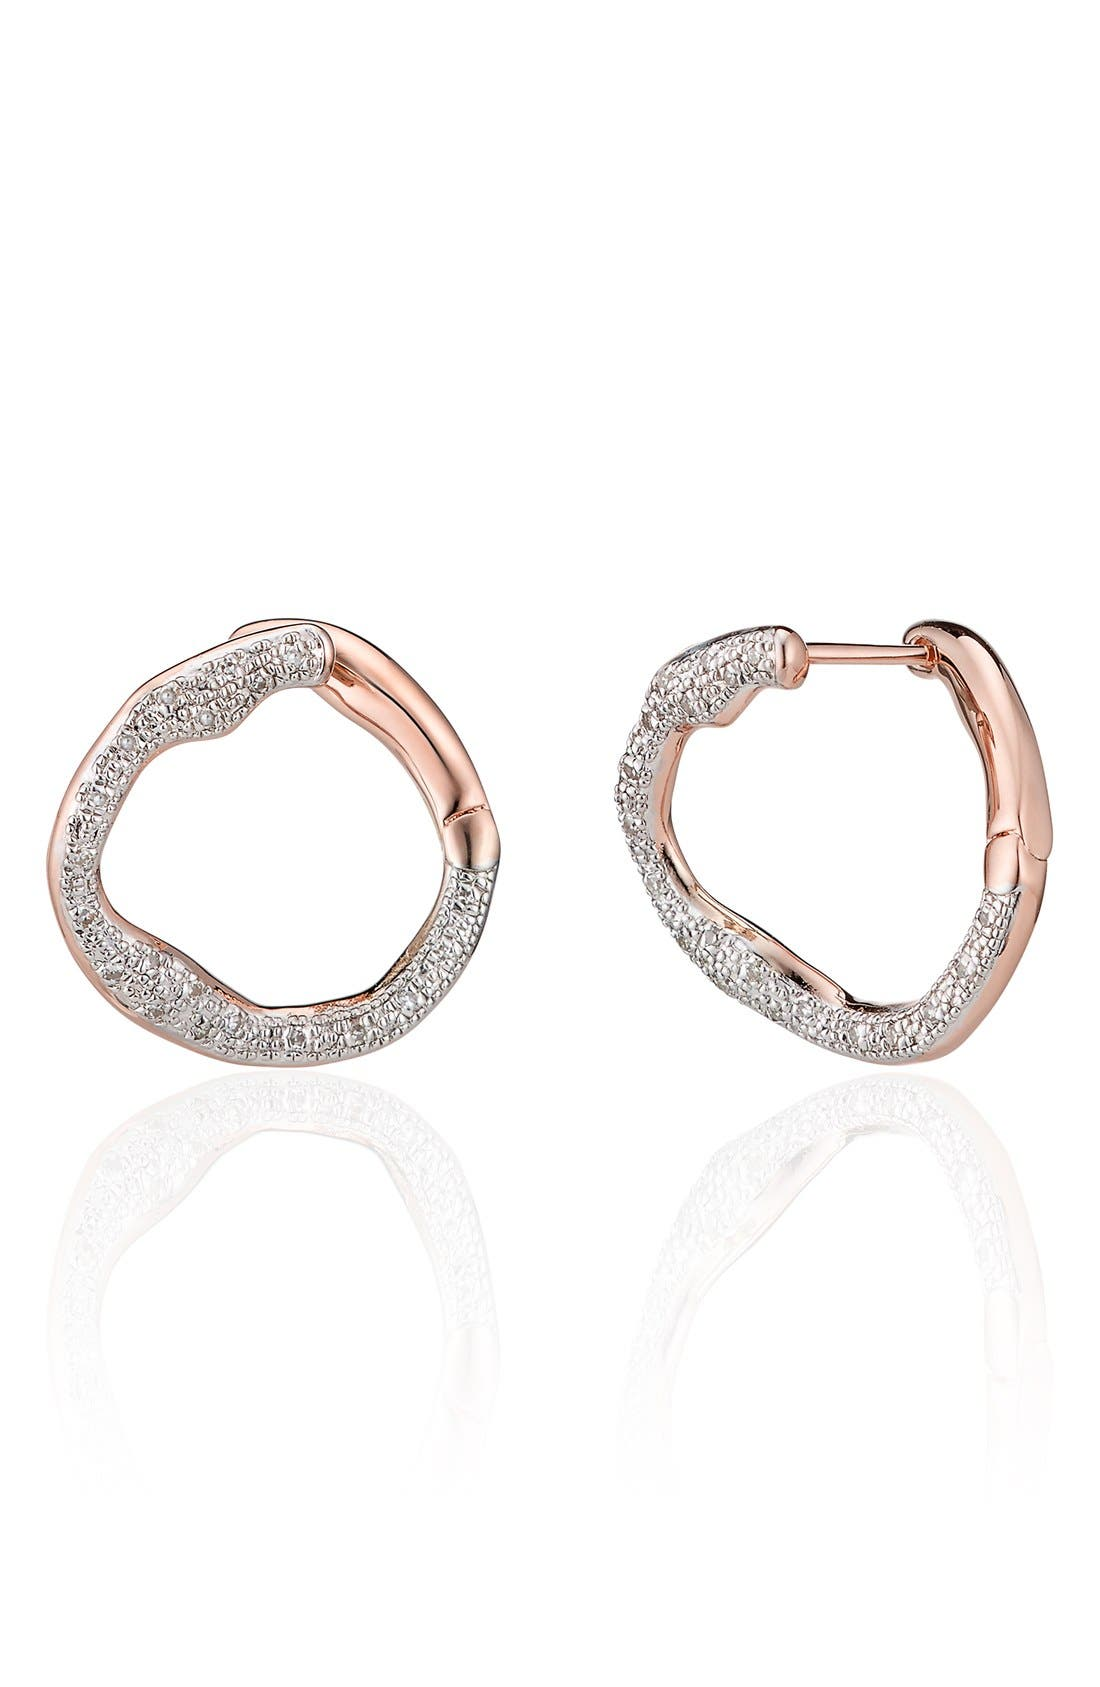 MONICA VINADER Riva Diamond Stud Earrings